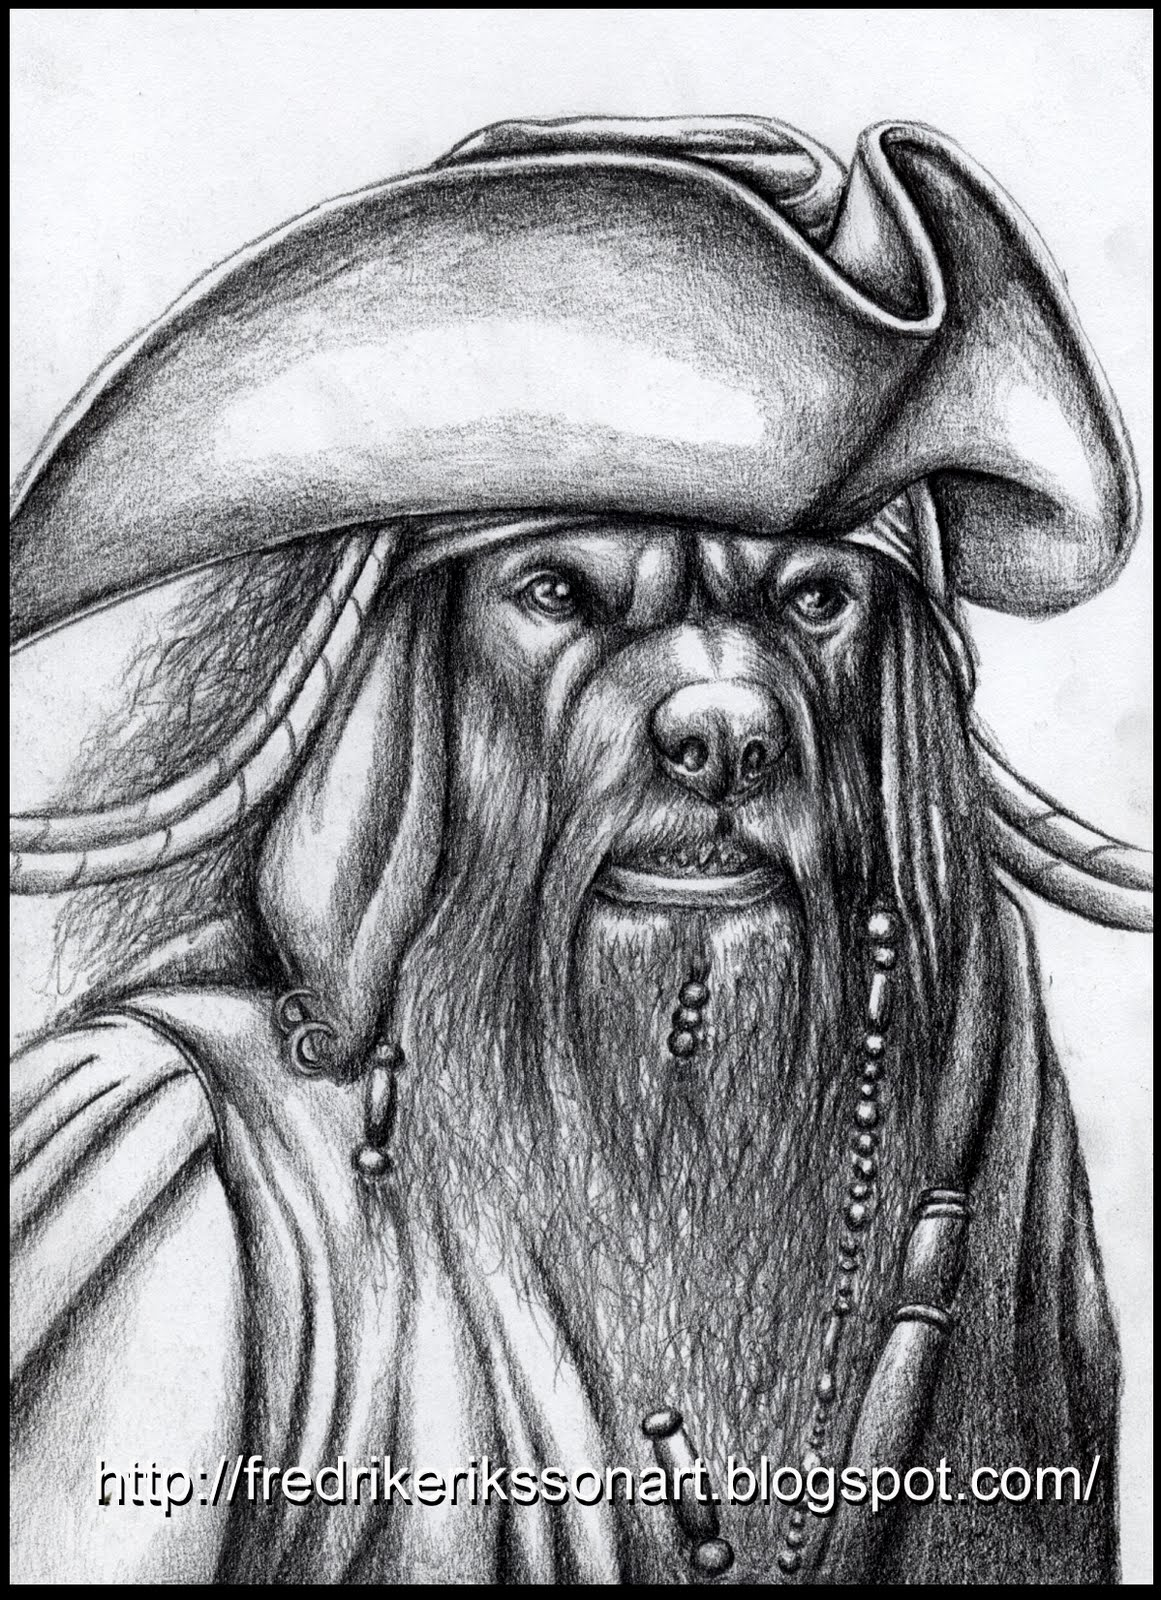 Art Of Fredrik Eriksson The Old Sea Dog Black Beard